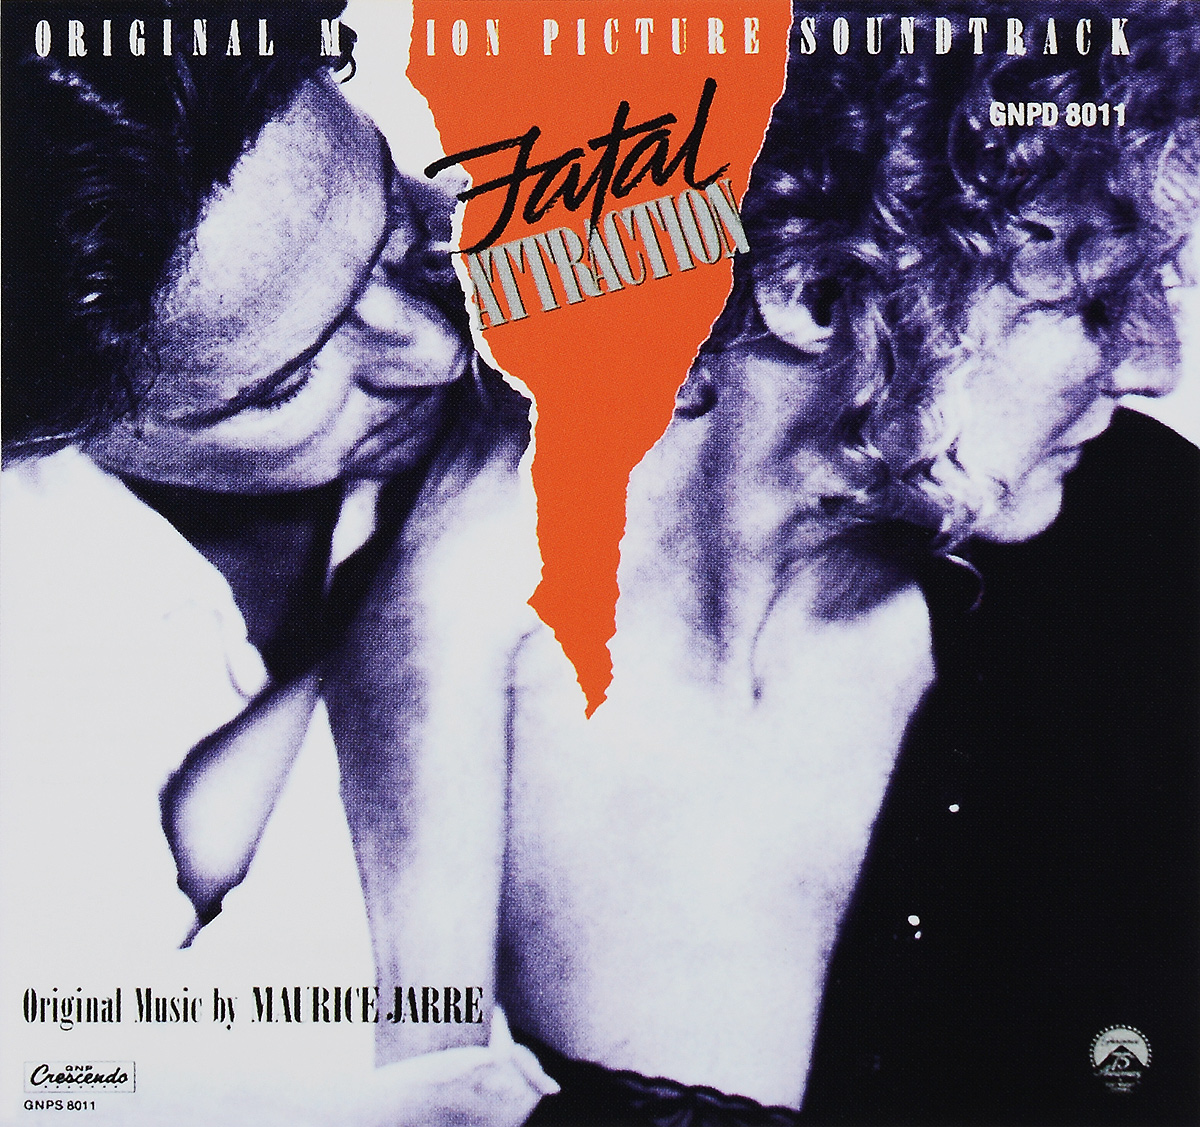 Алан Паскуа Fatal Attraction / Original Motion Picture Soundtrack casablanca original motion picture soundtrack